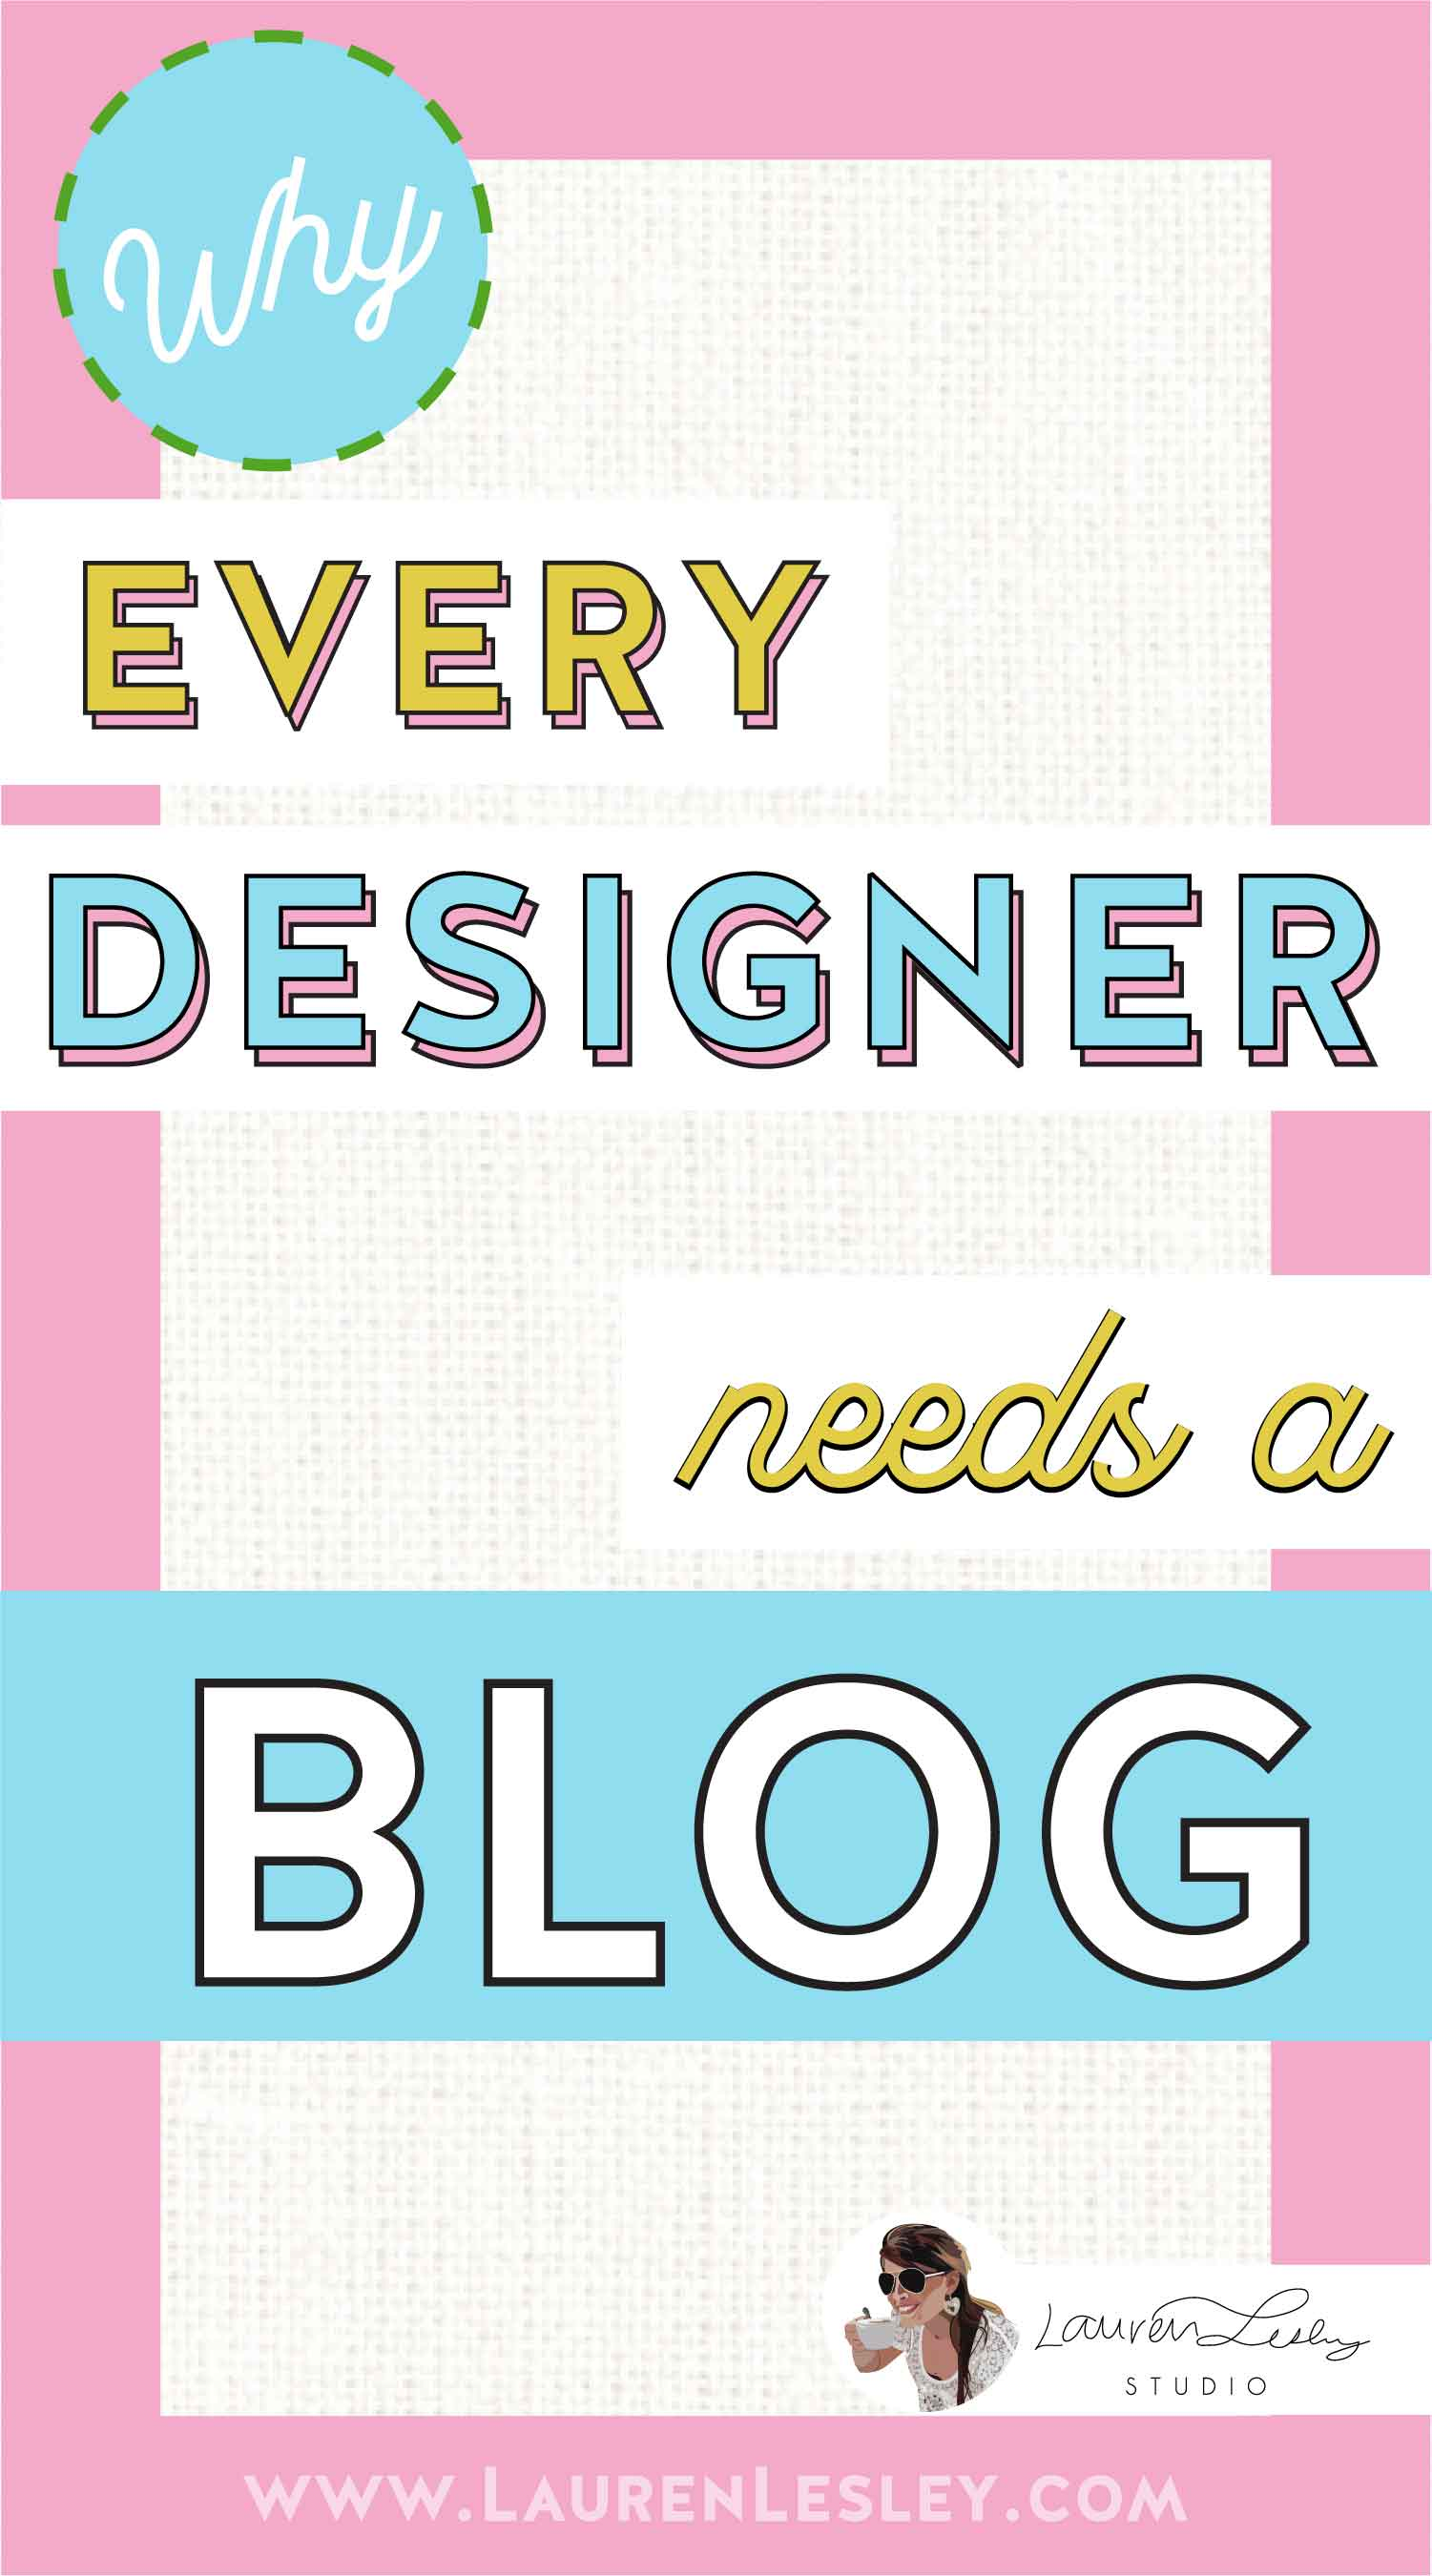 Every Designer Needs a Blog